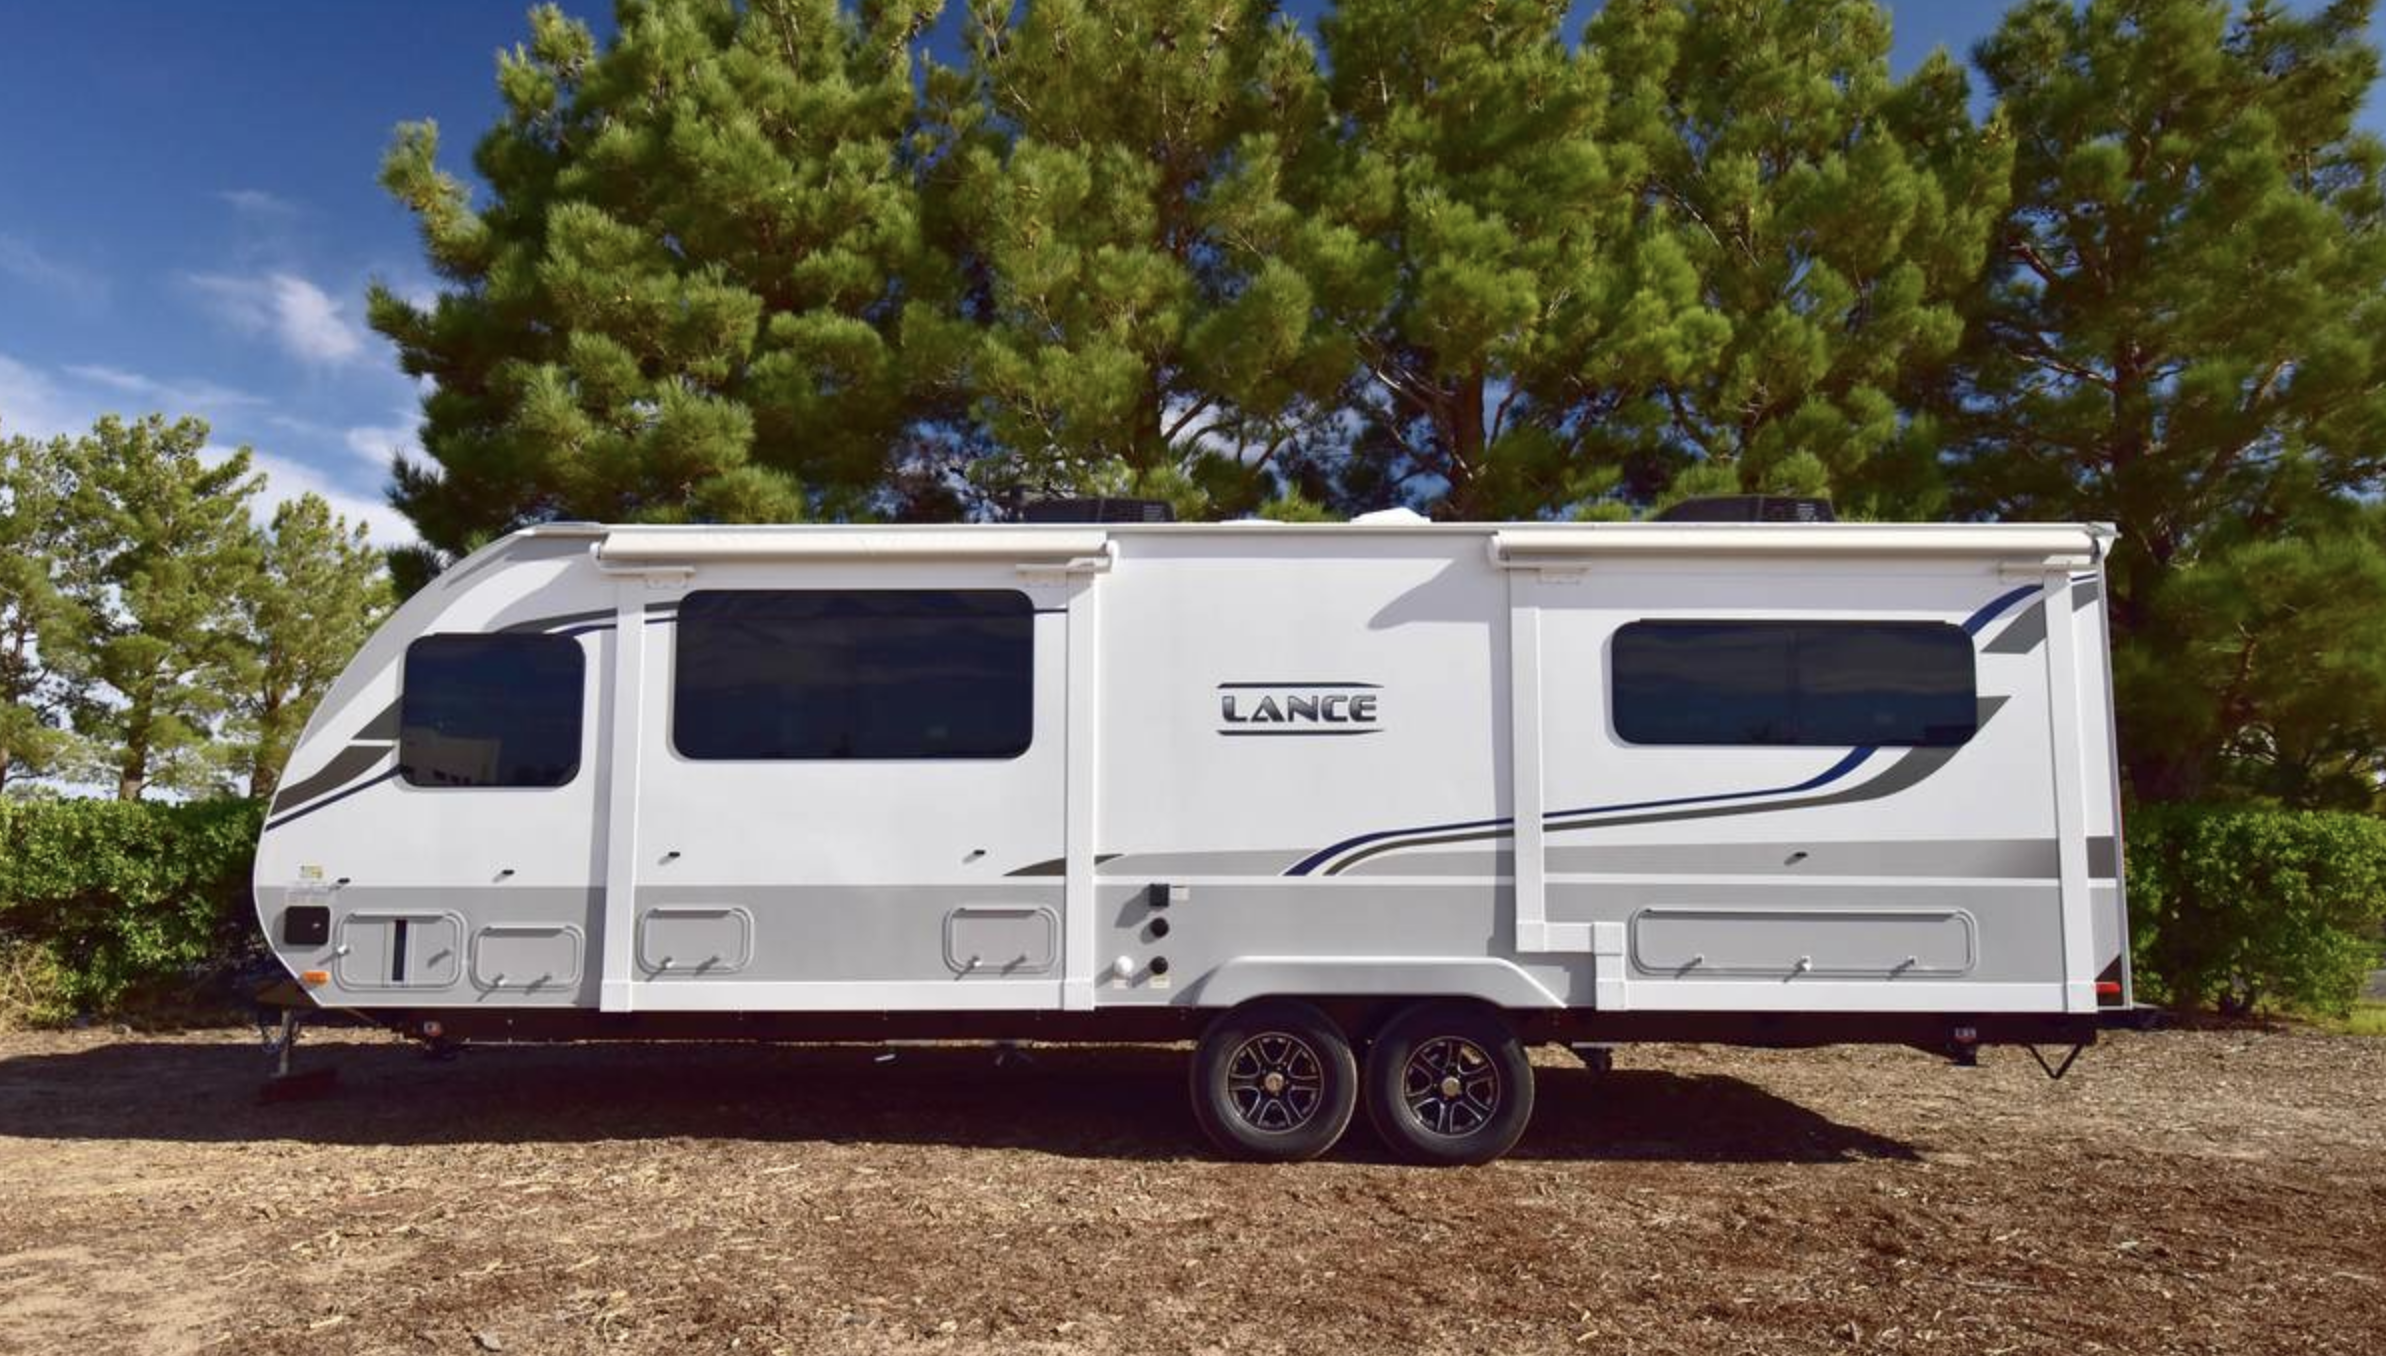 5 Best Lance Travel Trailers in 2021